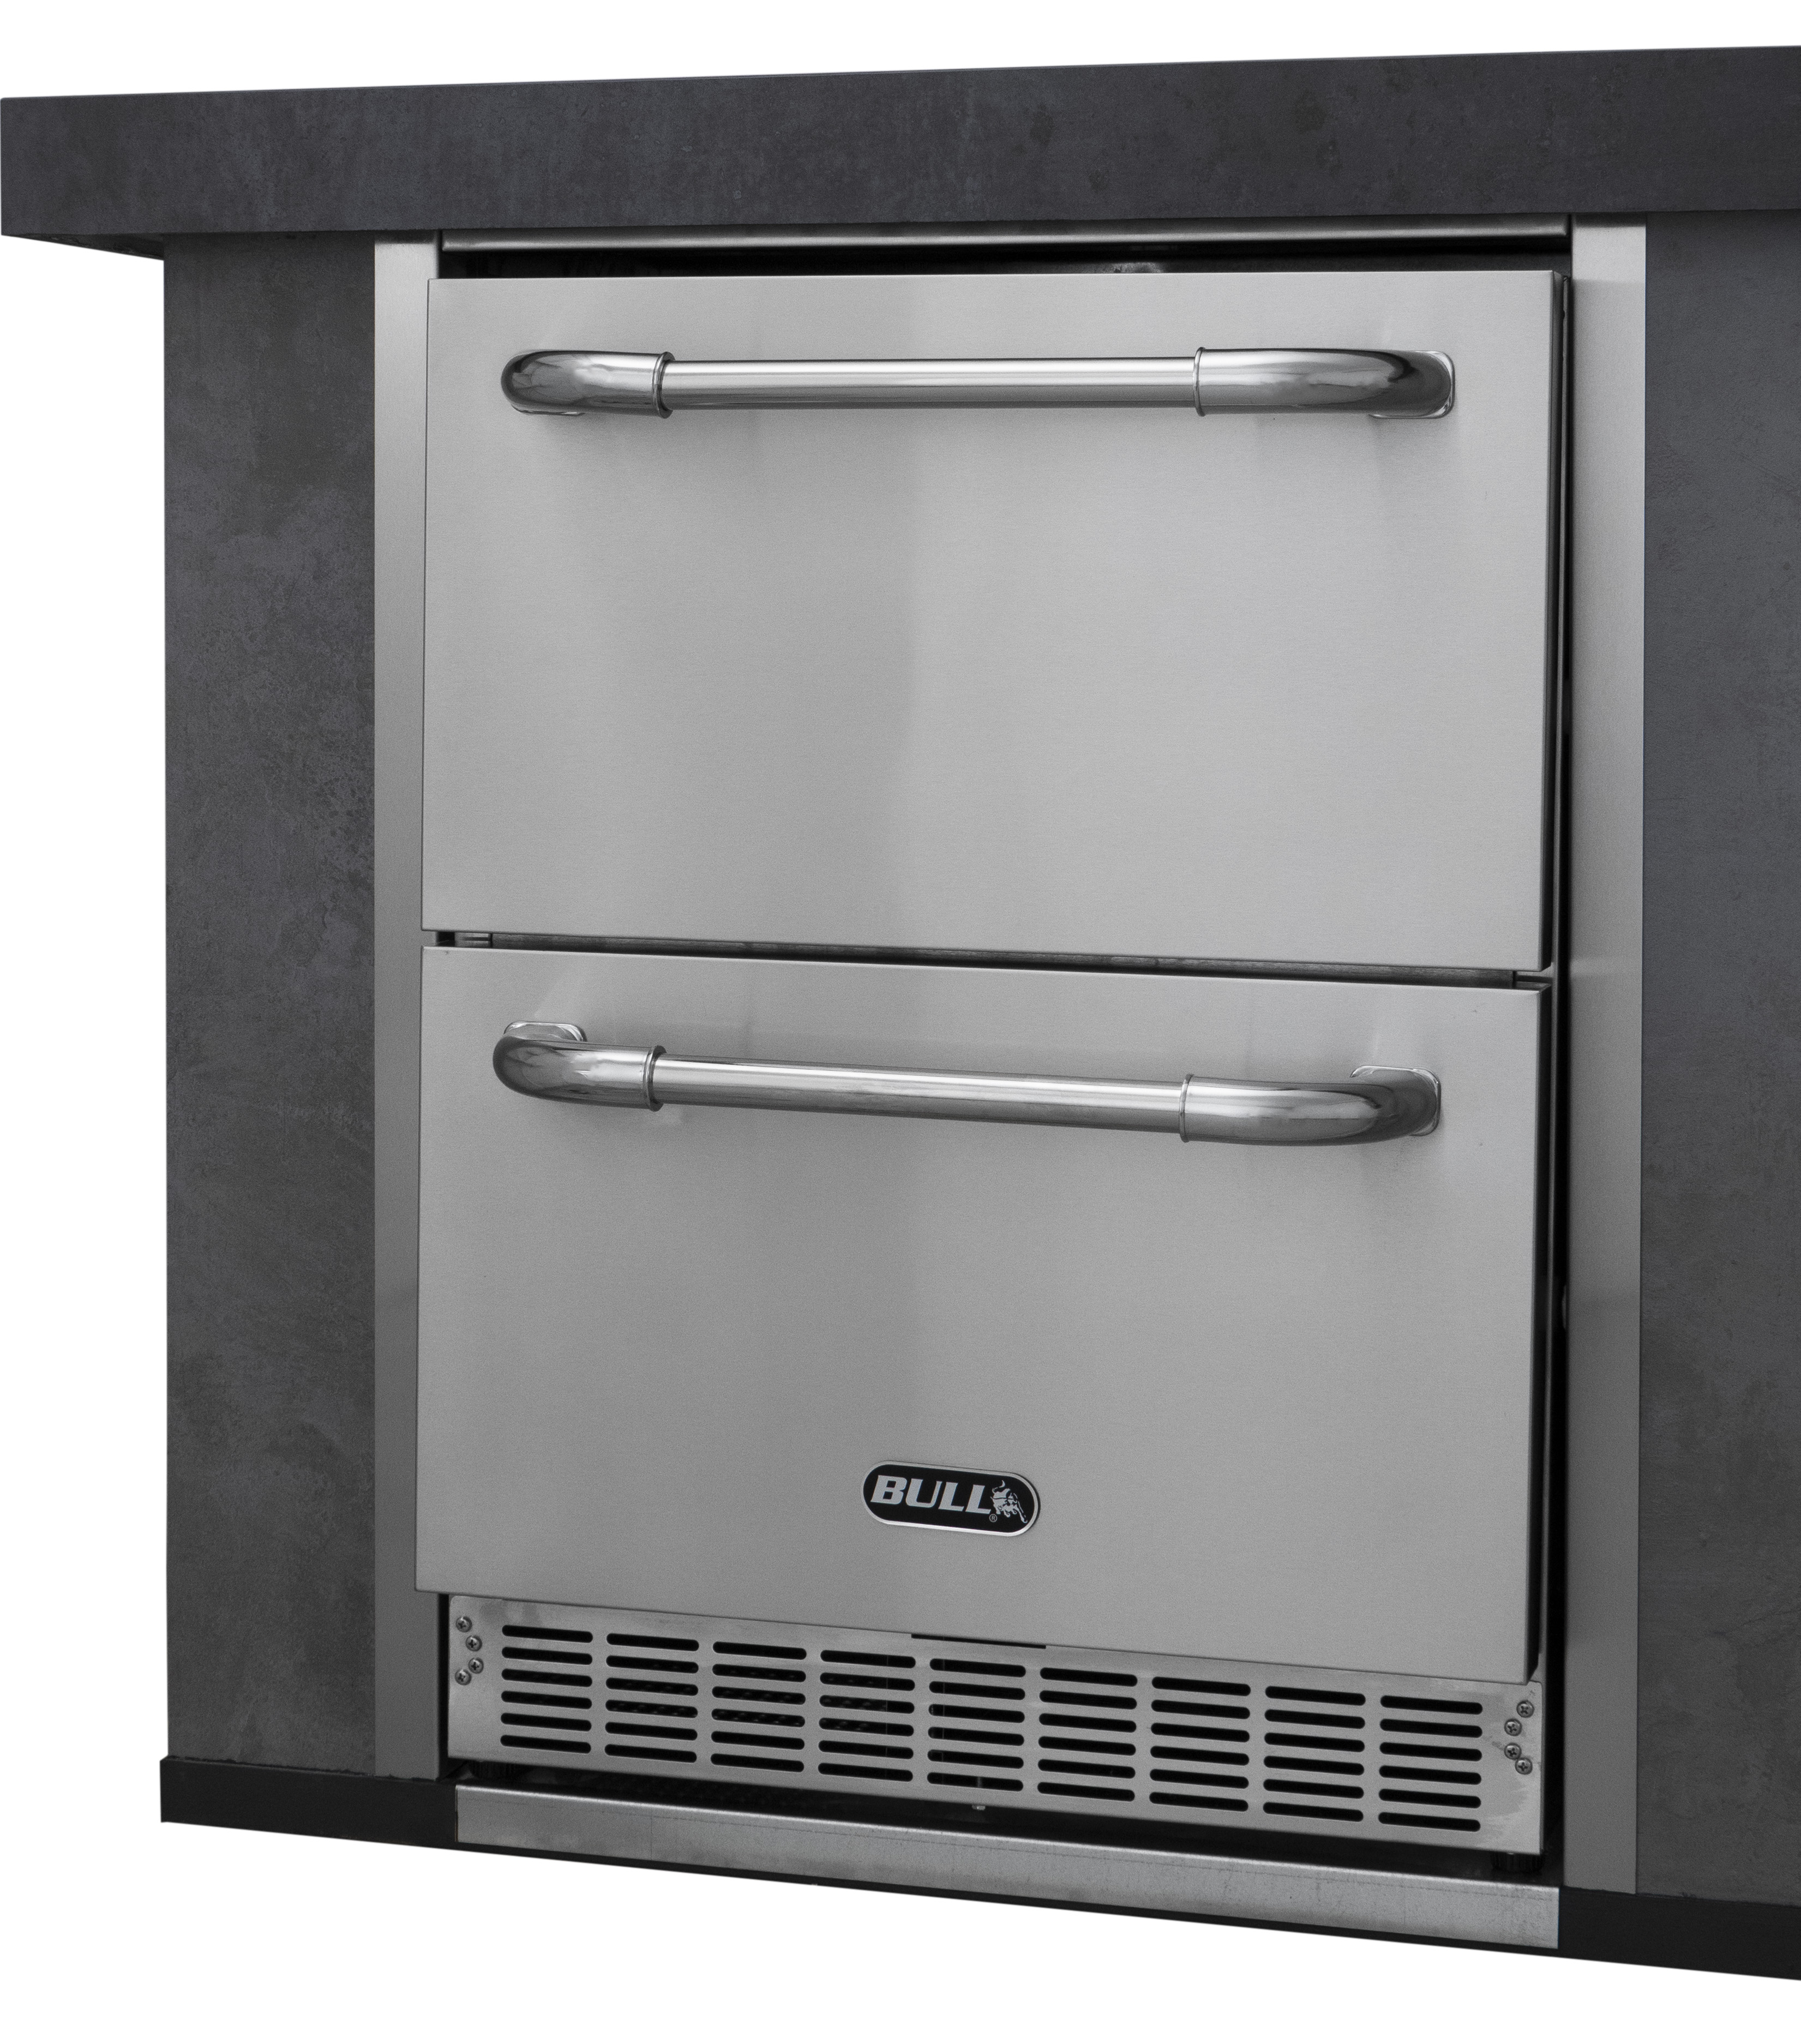 Premium Double Drawer Outdoor Rated Refrigerator , BBQ Components ,  europe, Bull europe limited, bull bbq europe